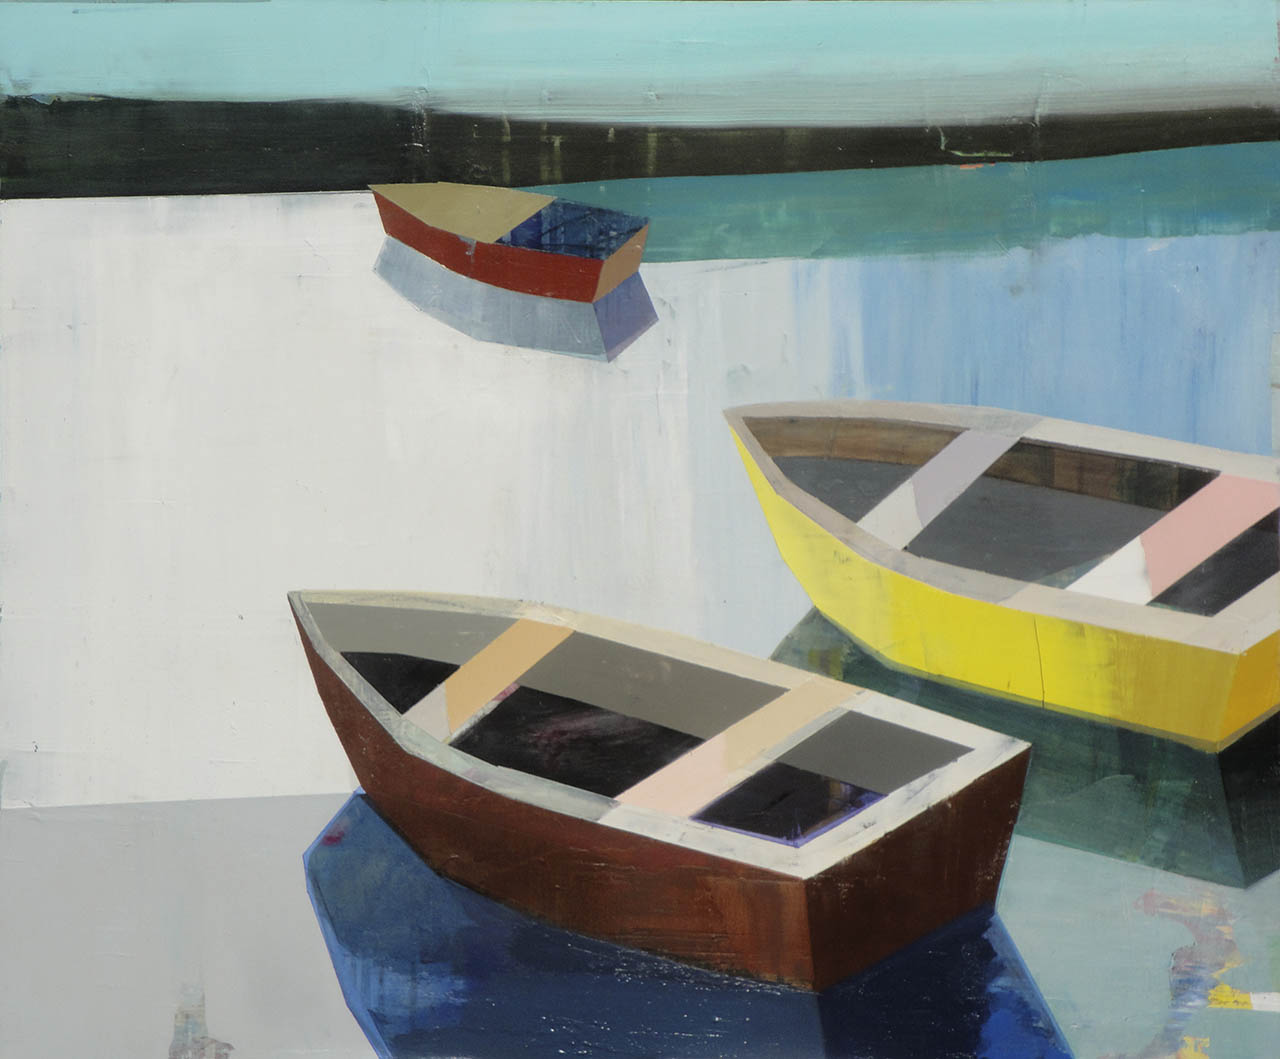 Boats in the Shallow Water, by Siddharth Parasnis